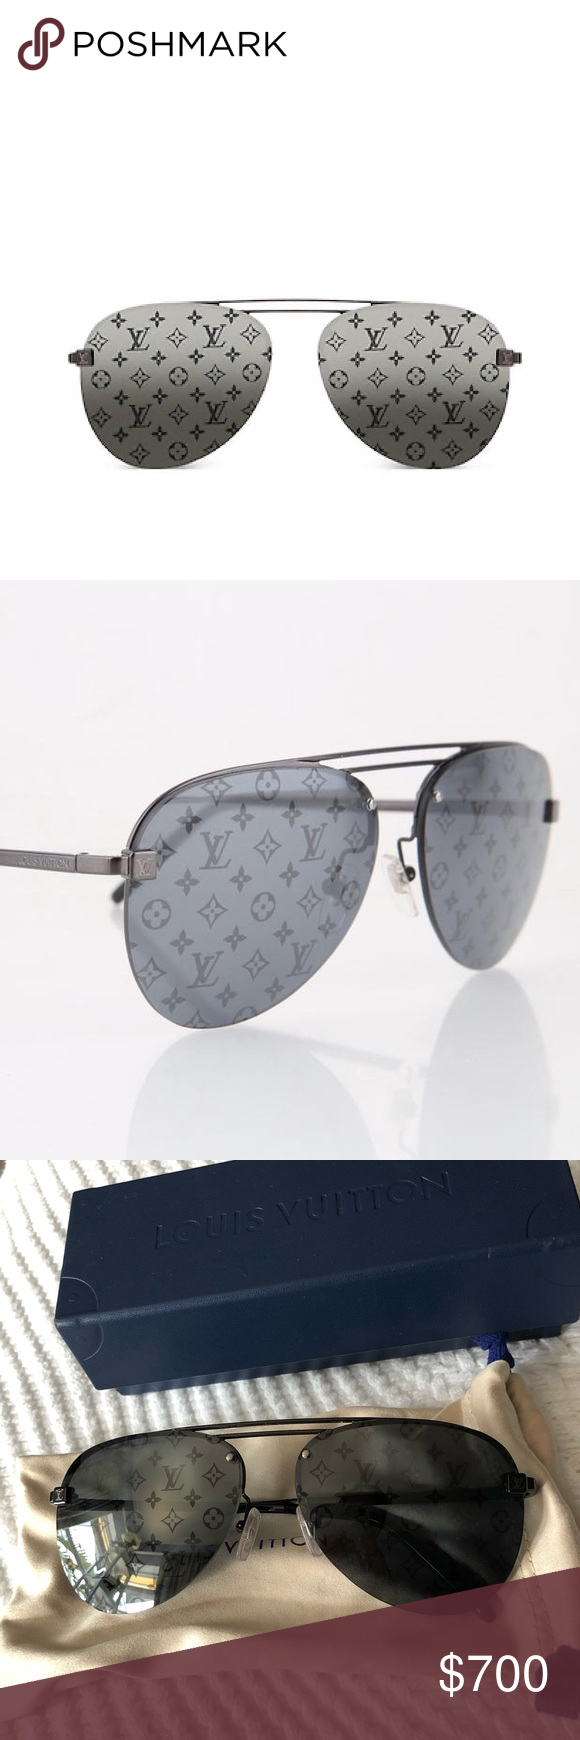 4a5aa223726 Louis Vuitton Clockwise Sunglasses These aviator-style Clockwise sunglasses  have a modern look thanks to